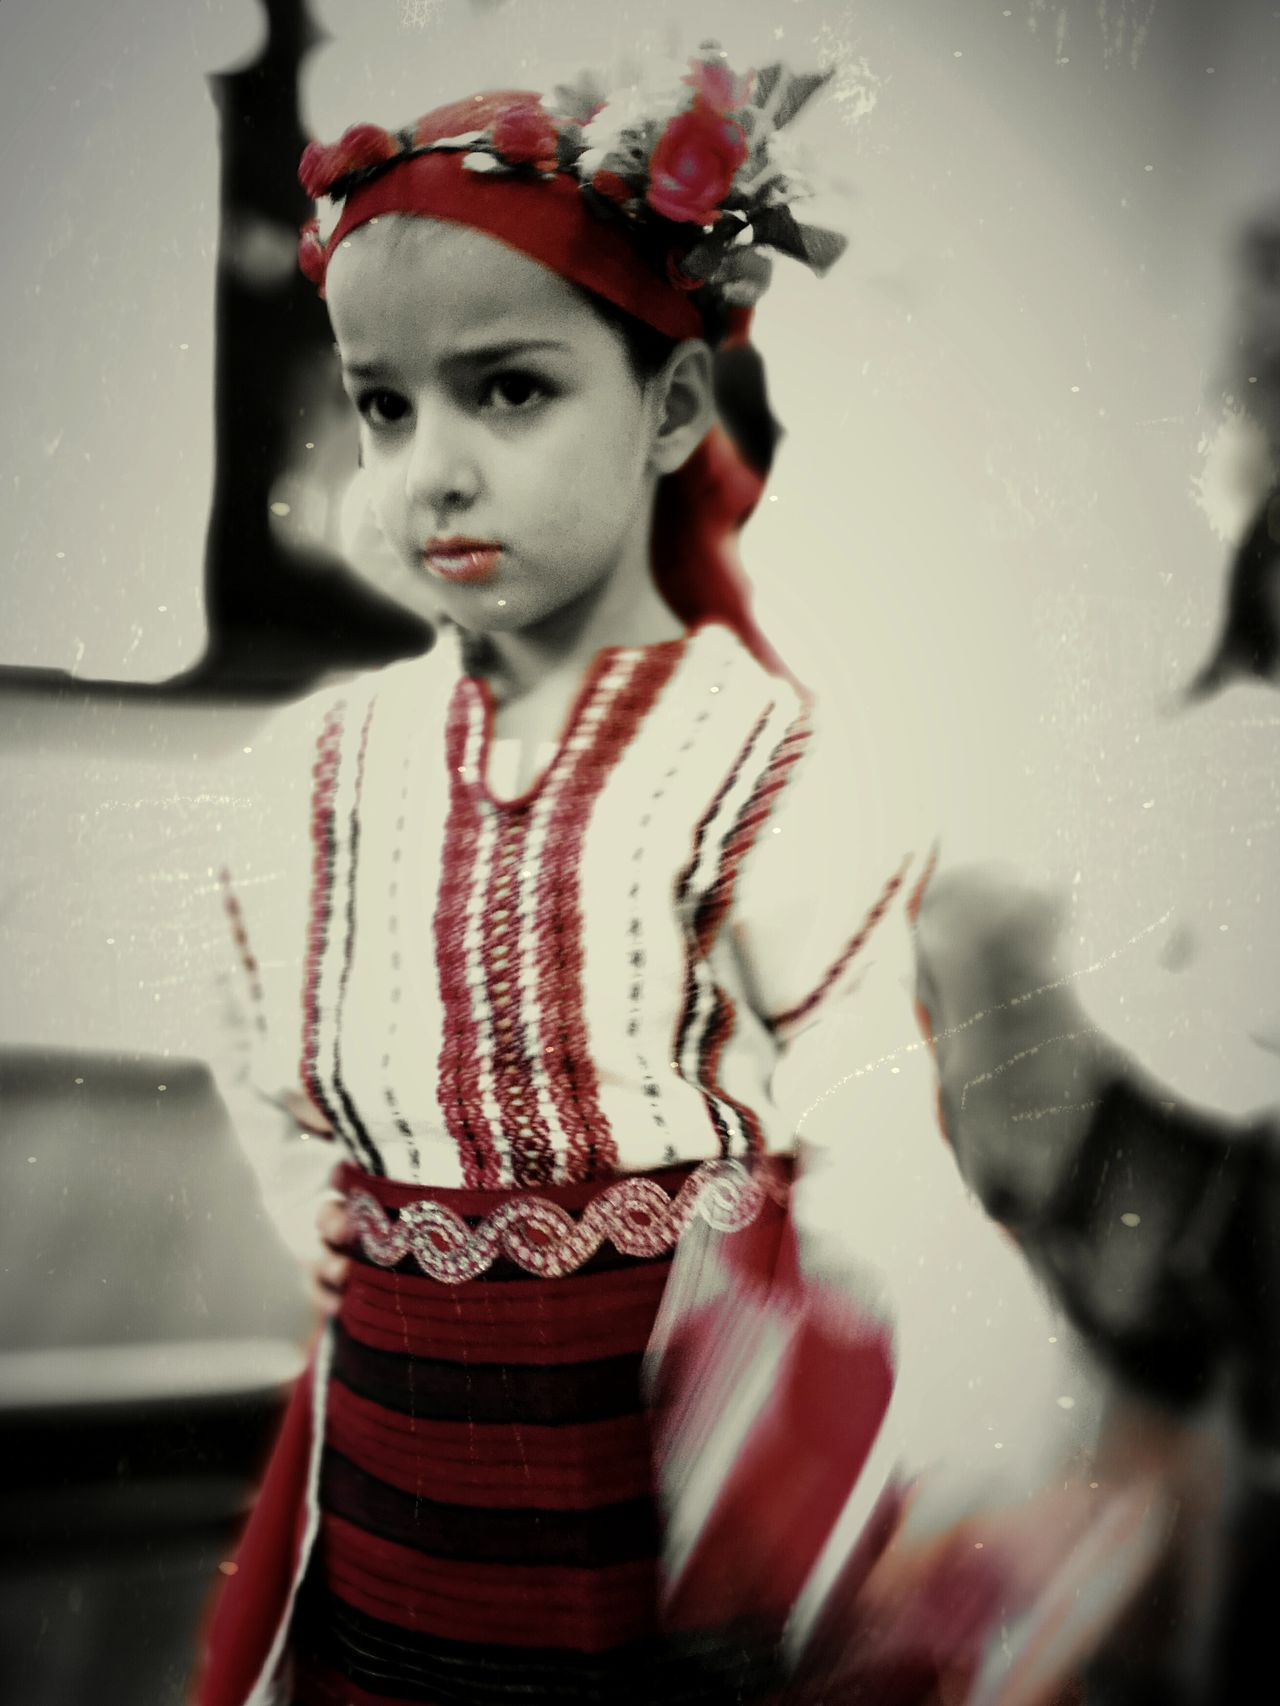 Bulgarian traditional dress Red One Person Portrait Indoors  PeopleFashion One Young Woman Only Child Children Photography Child Photography Children Of The World Child Portrait Childhood Memories Bulgaria Bułgaria Bulgarian Bulgarian Girl Bulgarian Folklore Bulgarian Traditions Bulgarian Dancers Bulgarian Costumes Folklore Folkportraits EmNewHere First Eyeem Photo